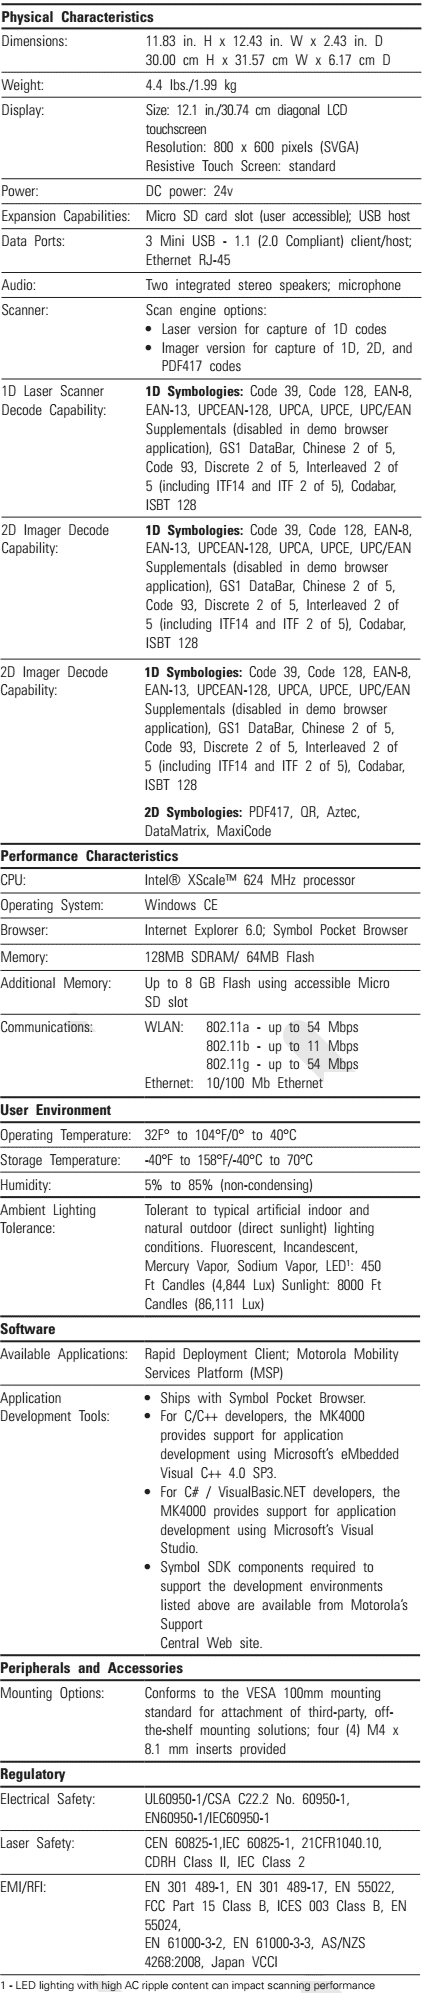 MK4000 Specifications